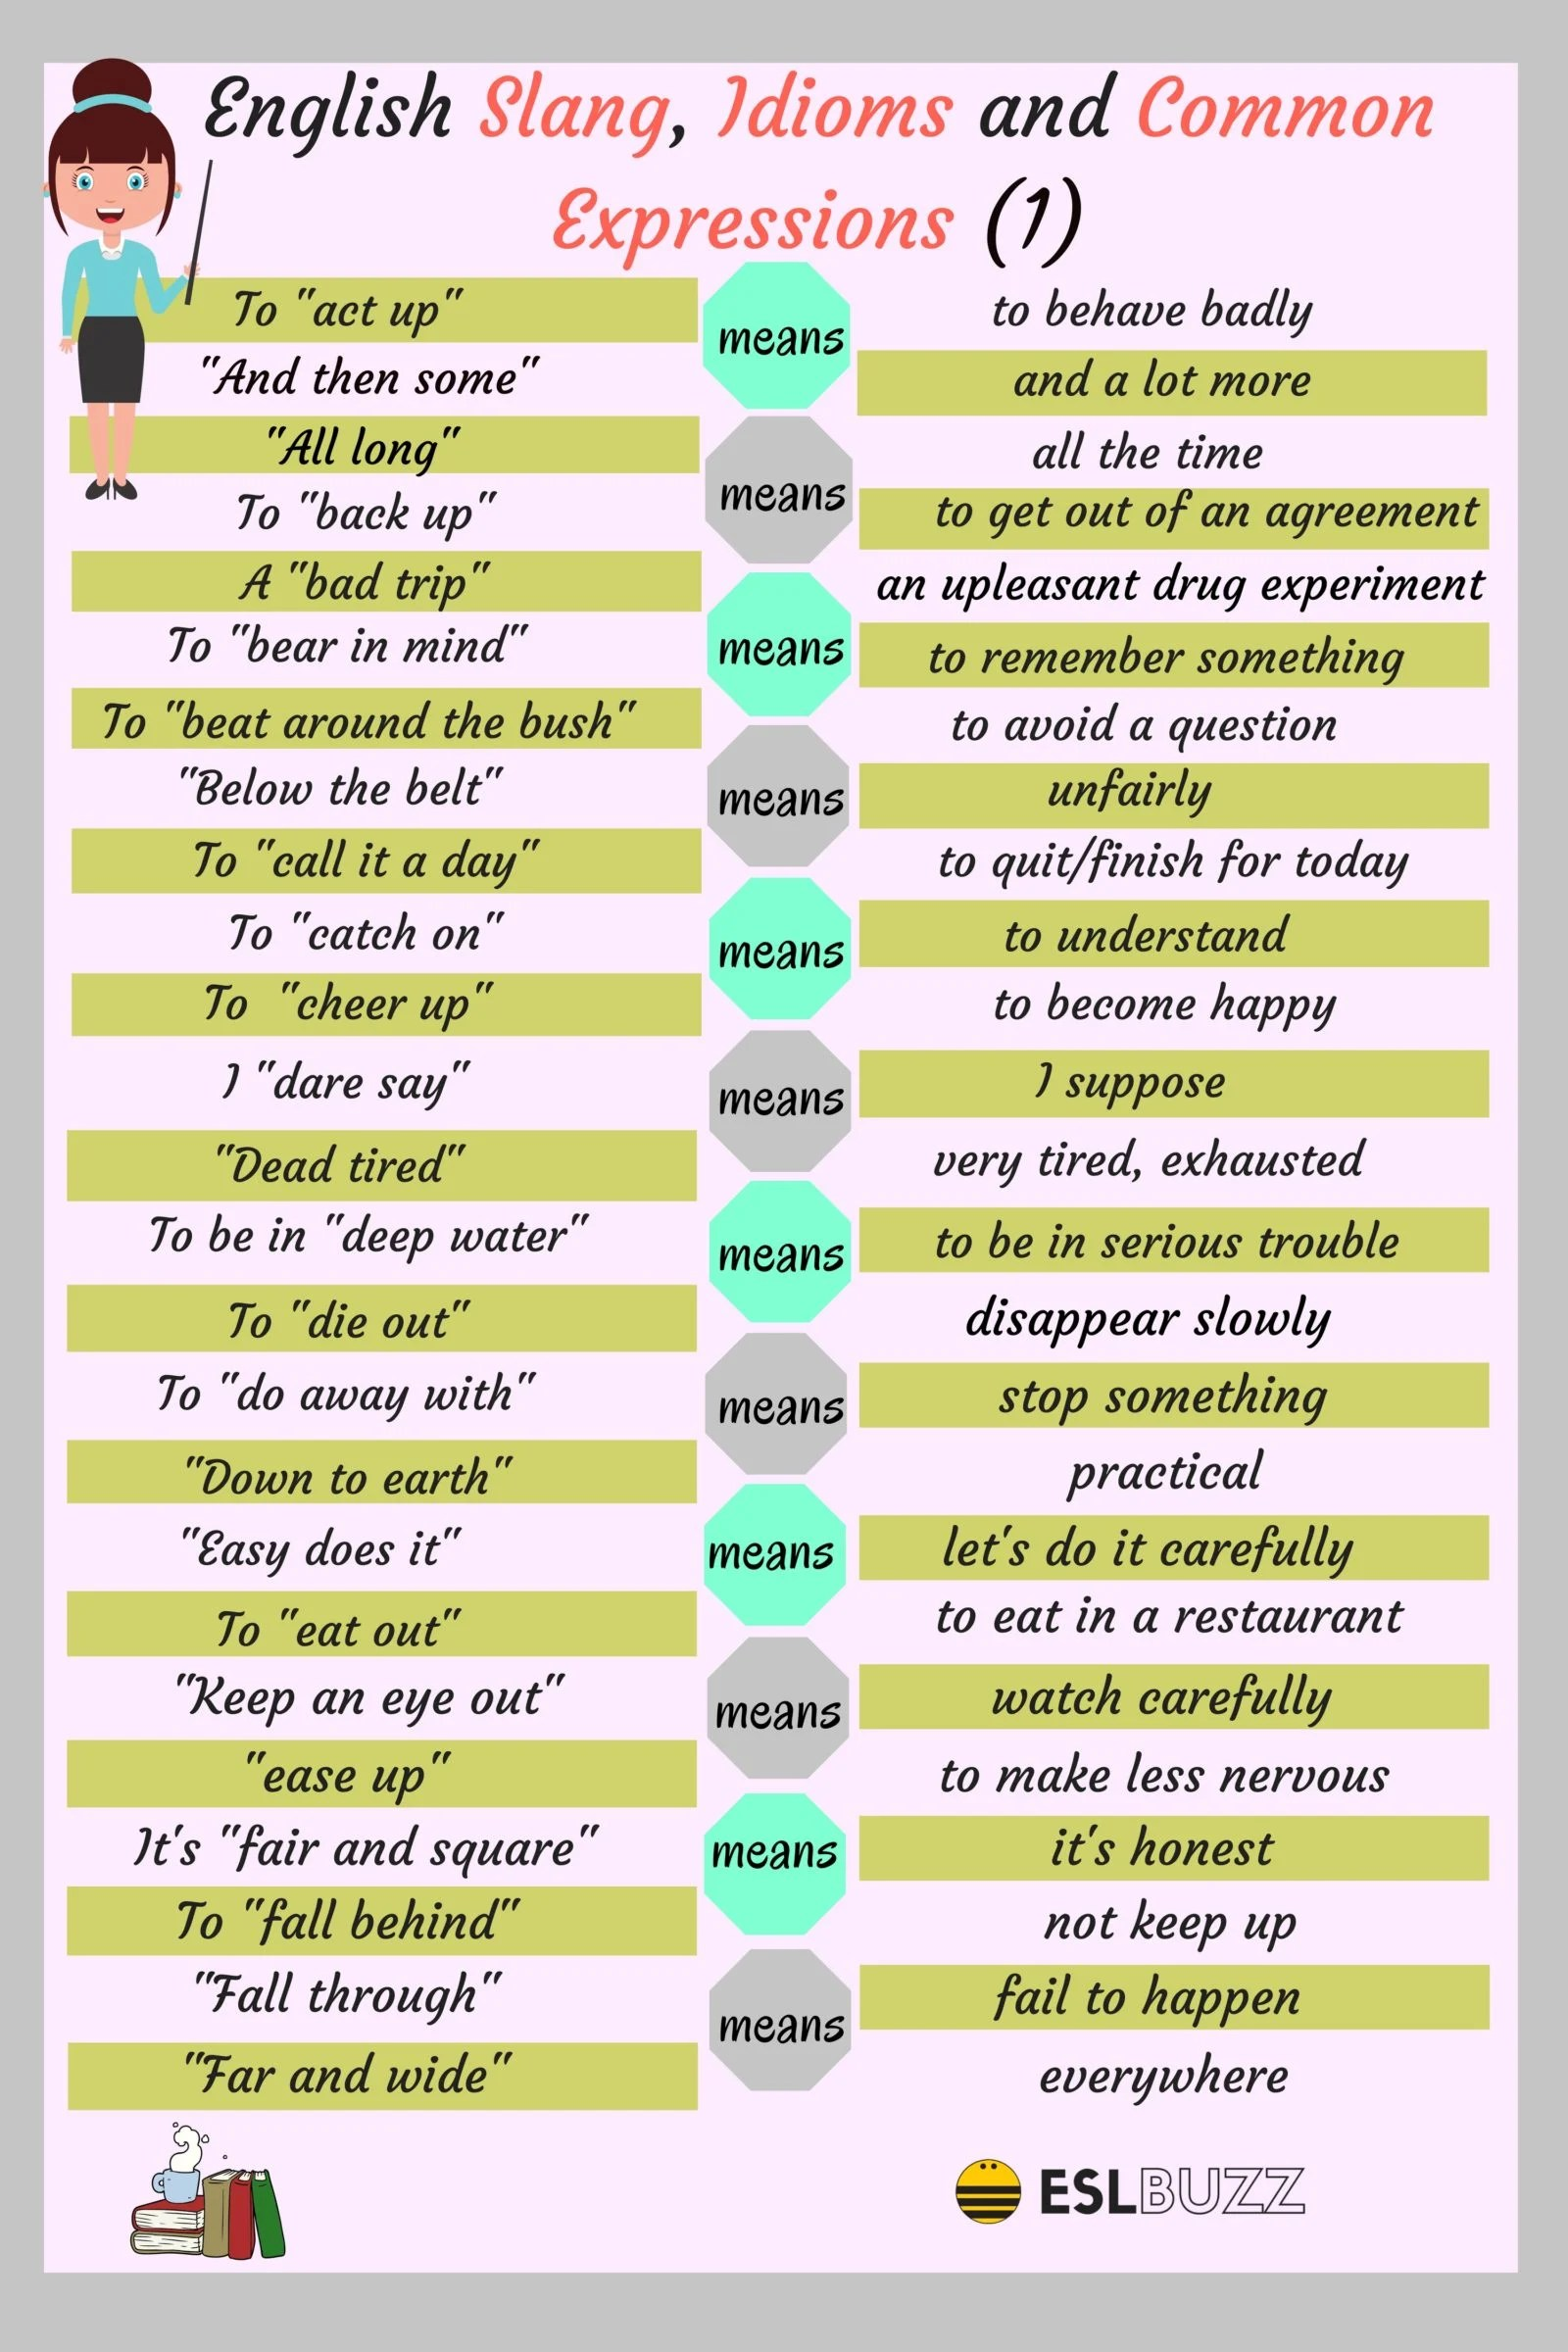 100 Popular Slang Words Idioms And Expressions In